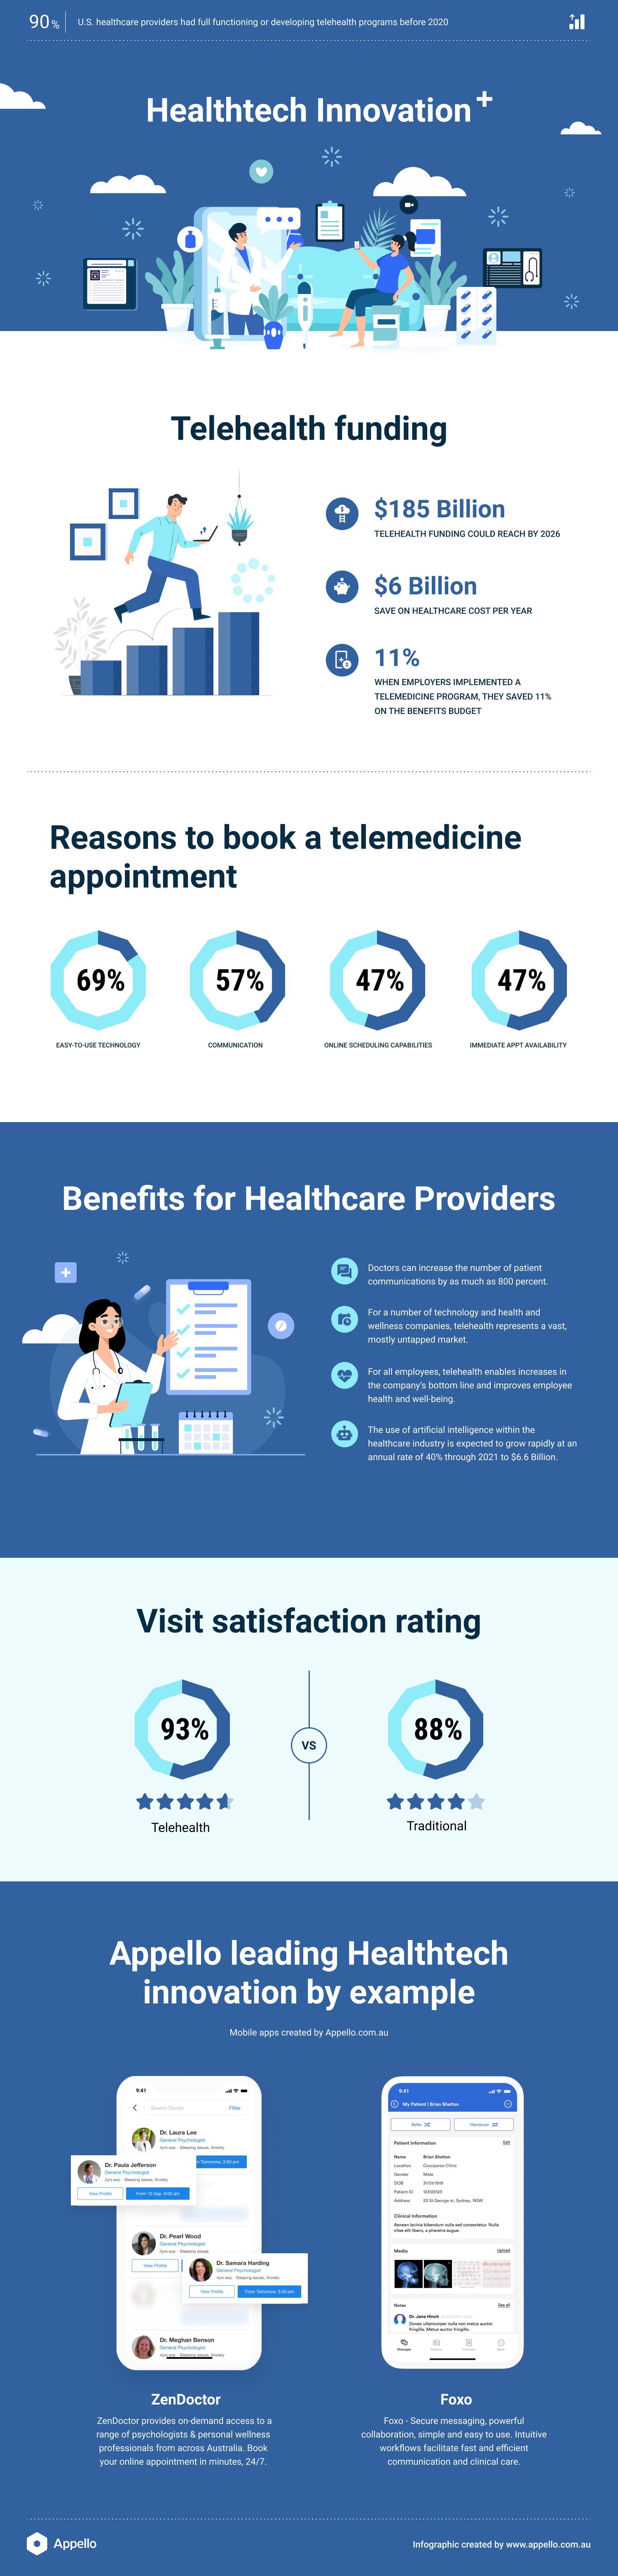 infographic about the current state of health technology, especially telehealth.